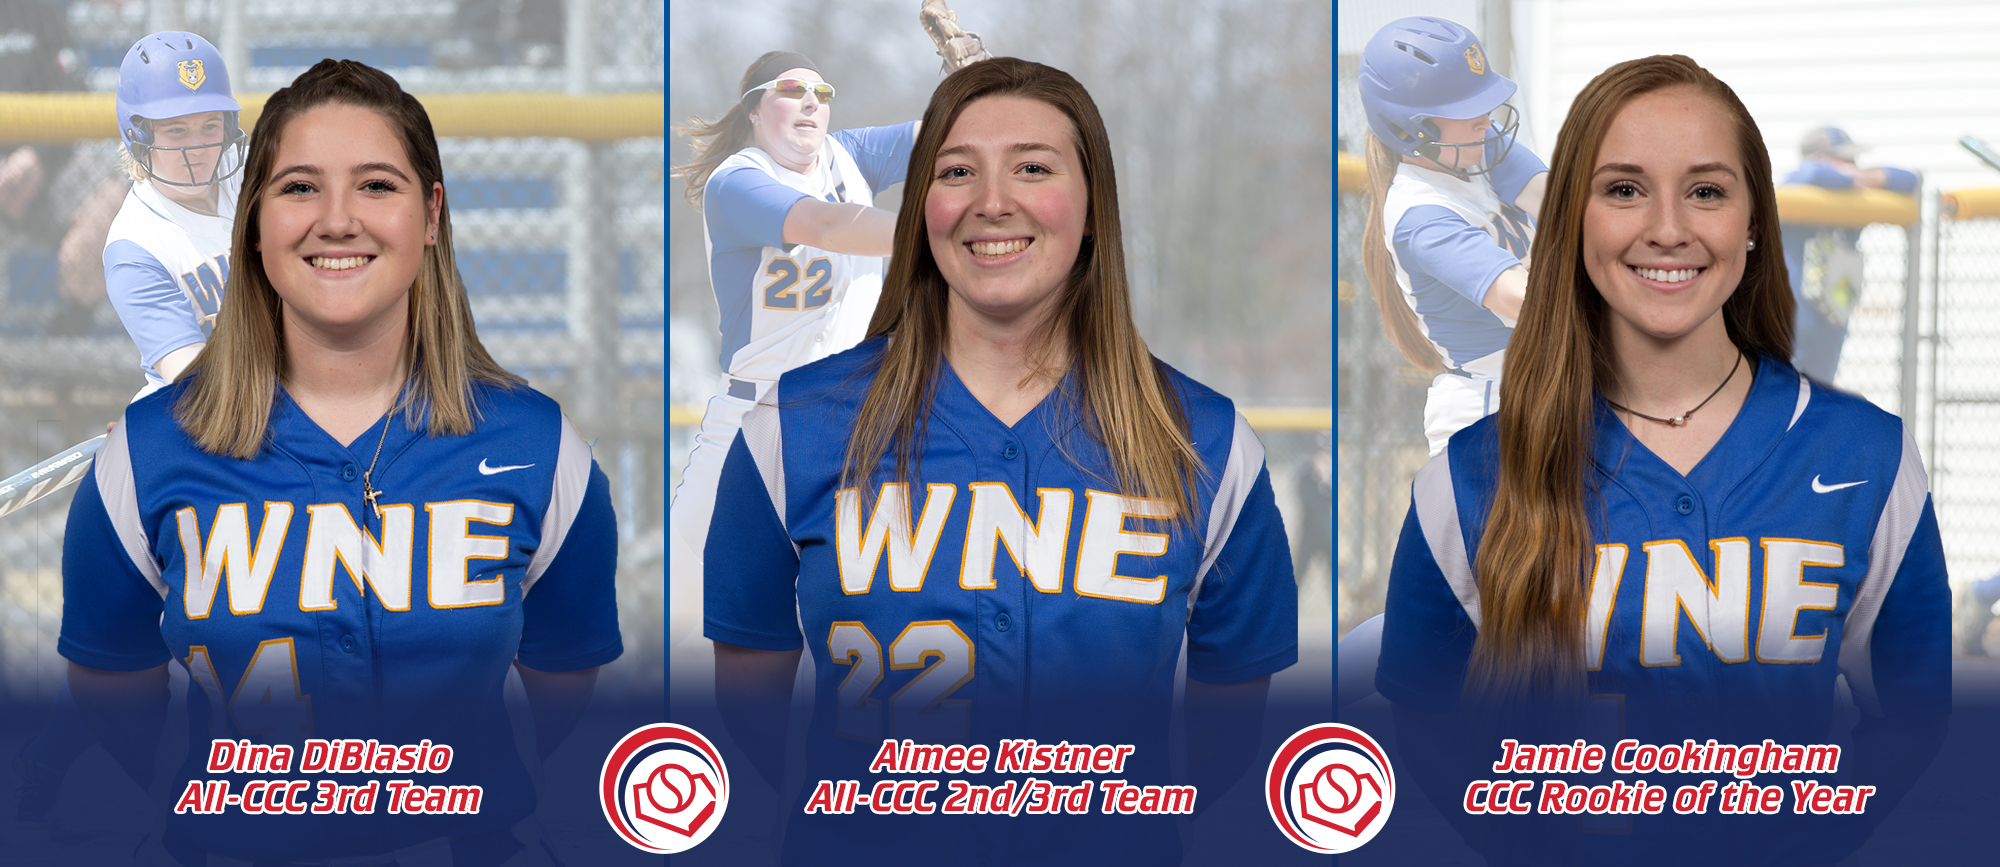 Cookingham Named CCC Rookie of the Year, Kistner & DiBlasio Earn All-CCC Accolades